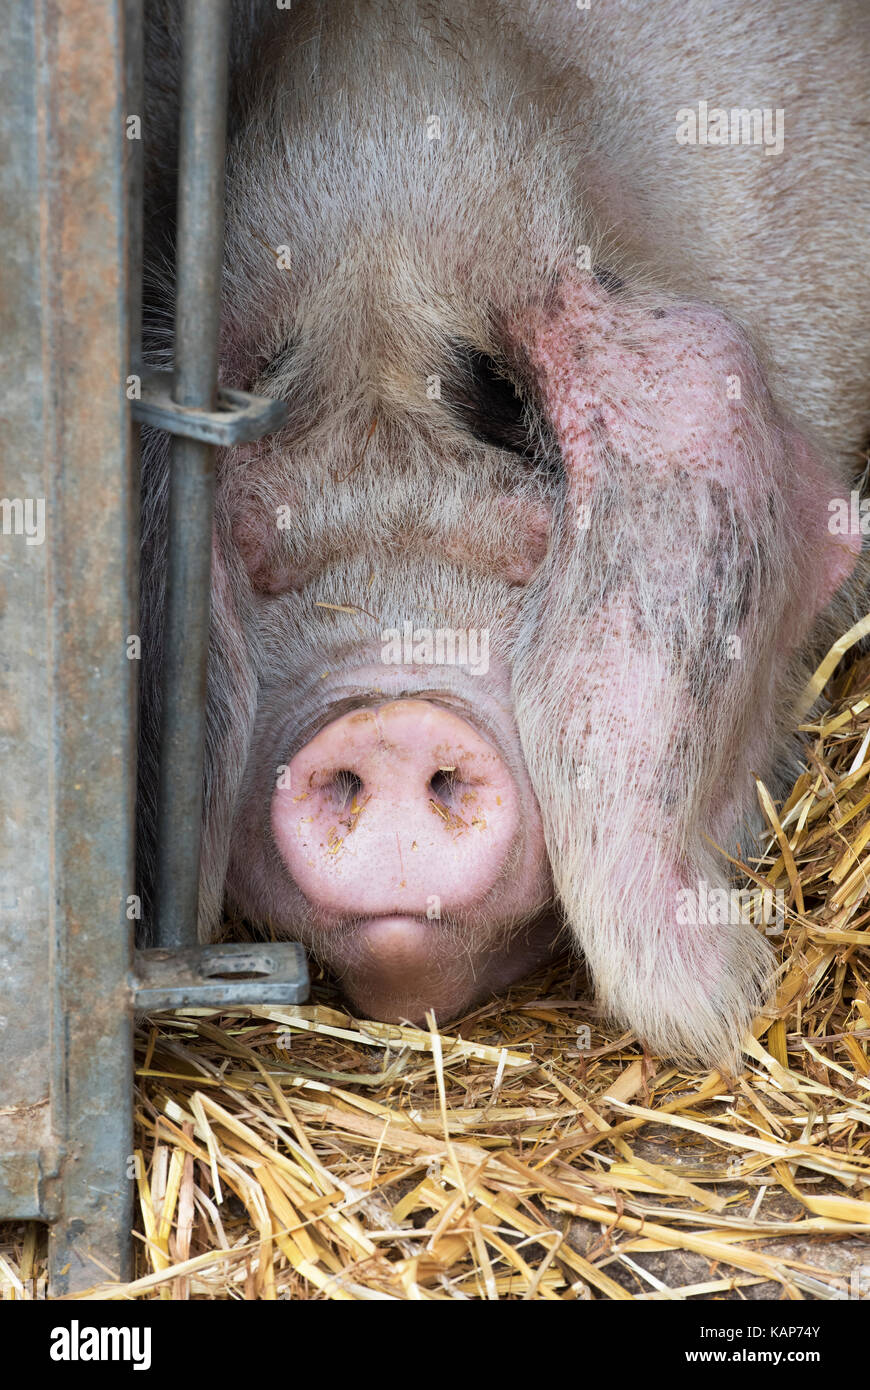 Sus scrofa domesticus. Pig sleeping in a temporary pen at Malvern autumn show, Worcestershire, UK - Stock Image